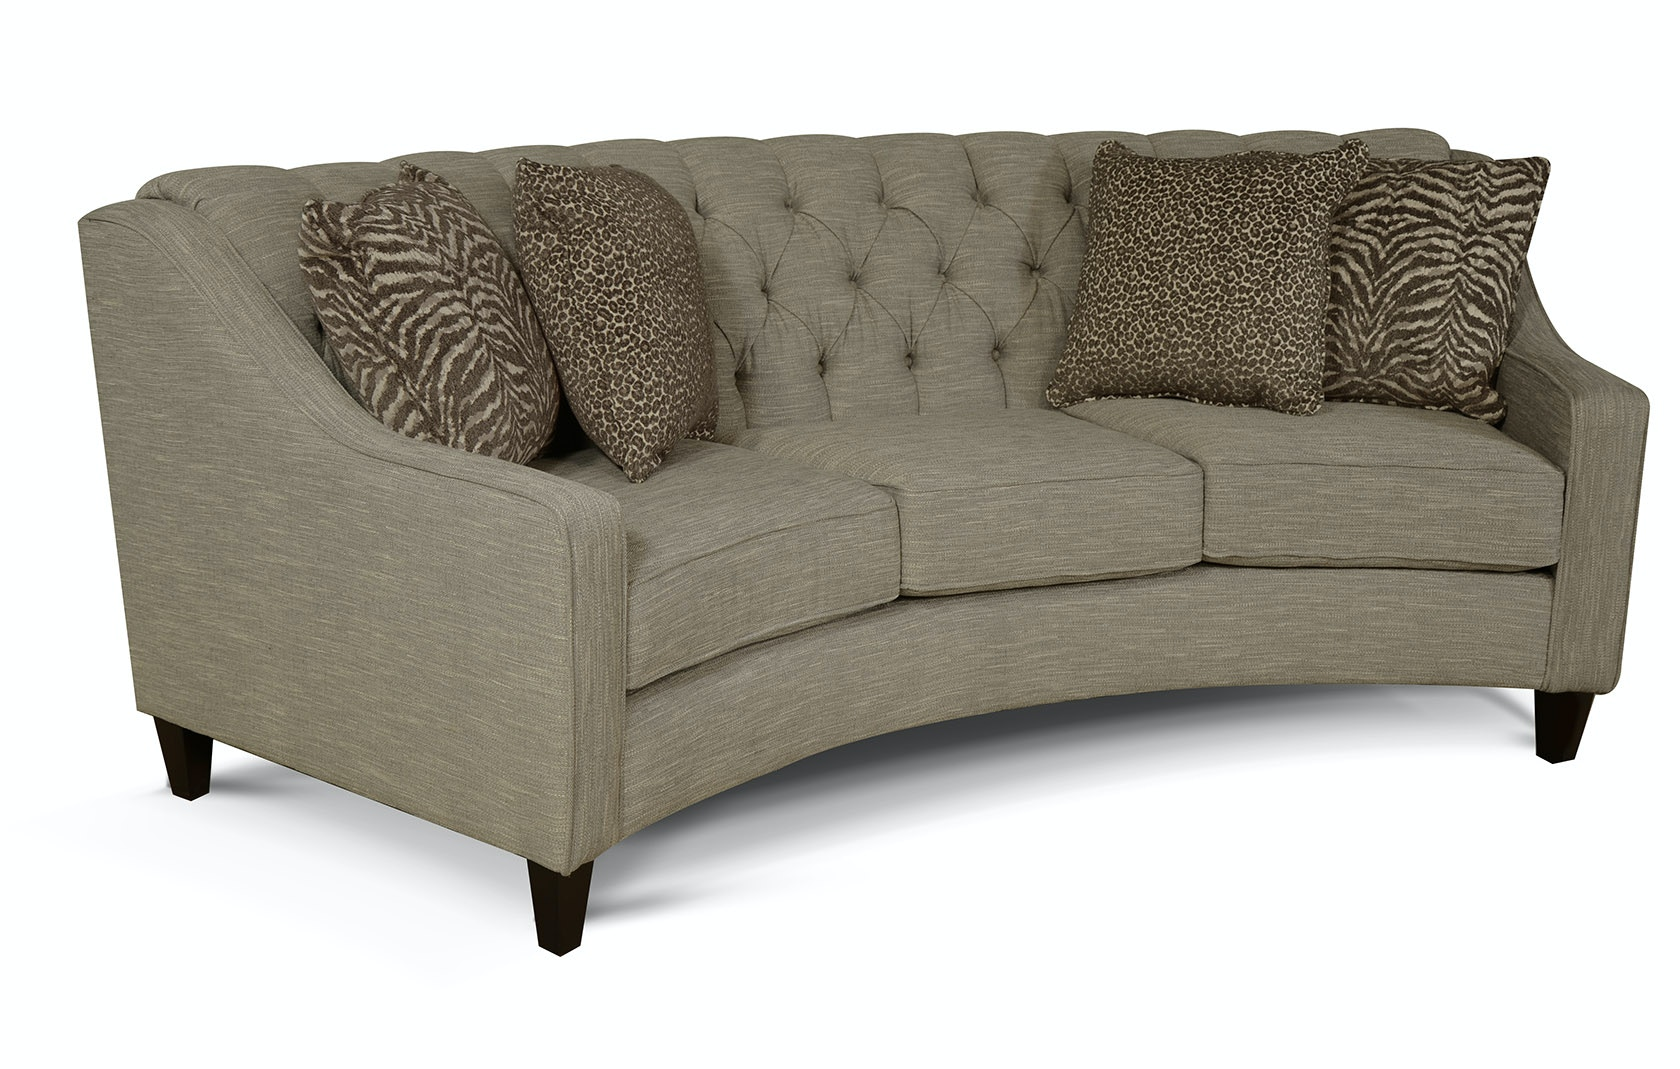 Sofa Finneran Sofa Abide Furniture Springdale And Fayetteville, Ar